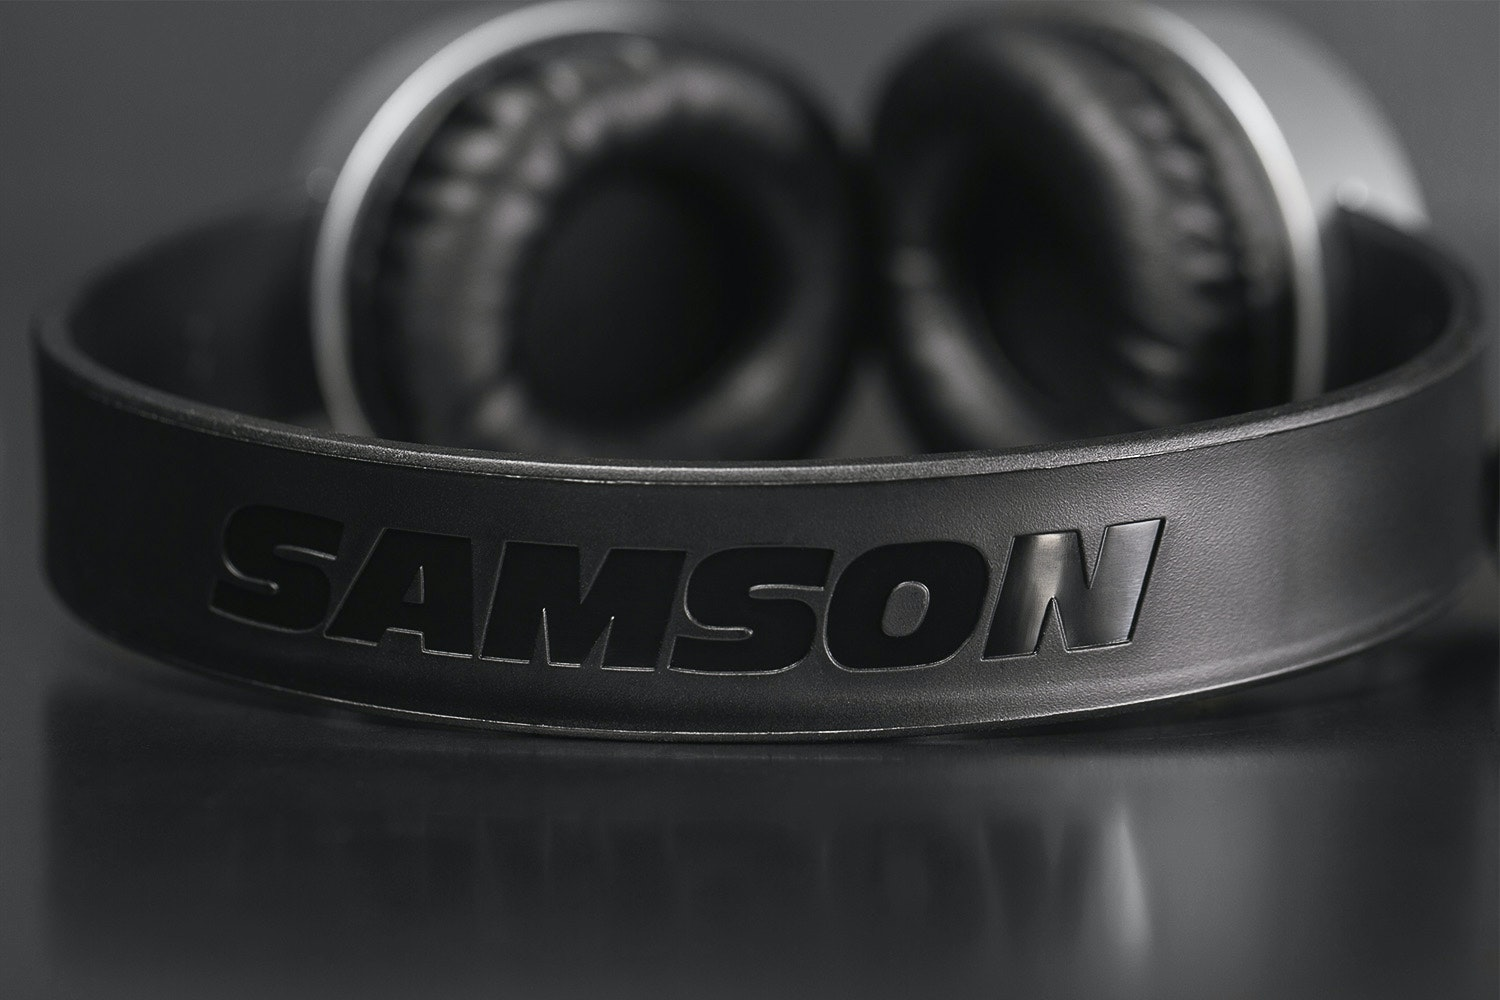 Samson SR450 On-Ear Headphones